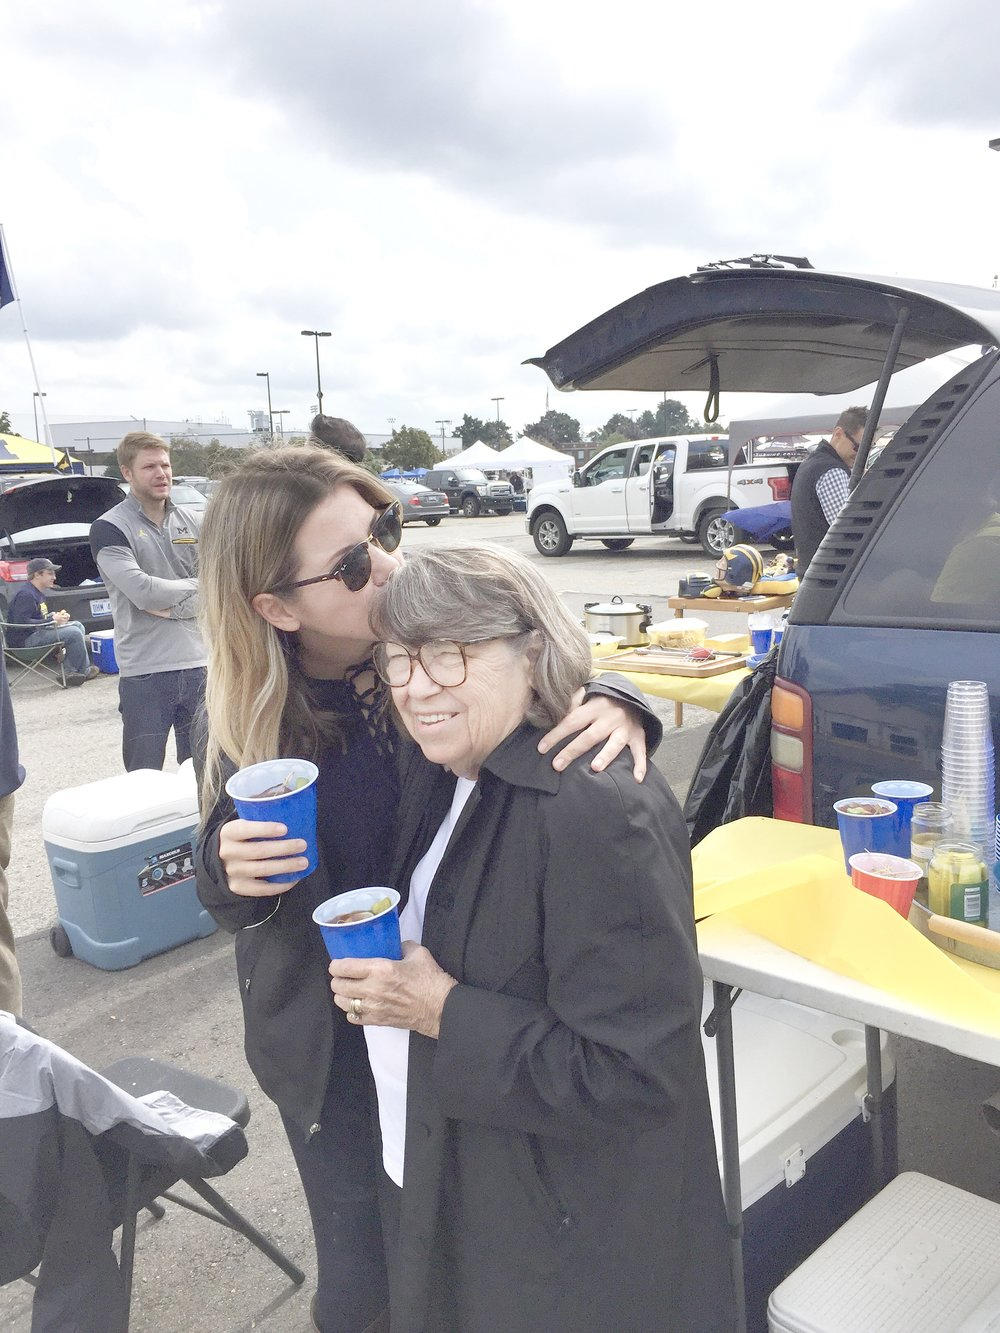 Moom and me enjoying bloodies at a tailgate